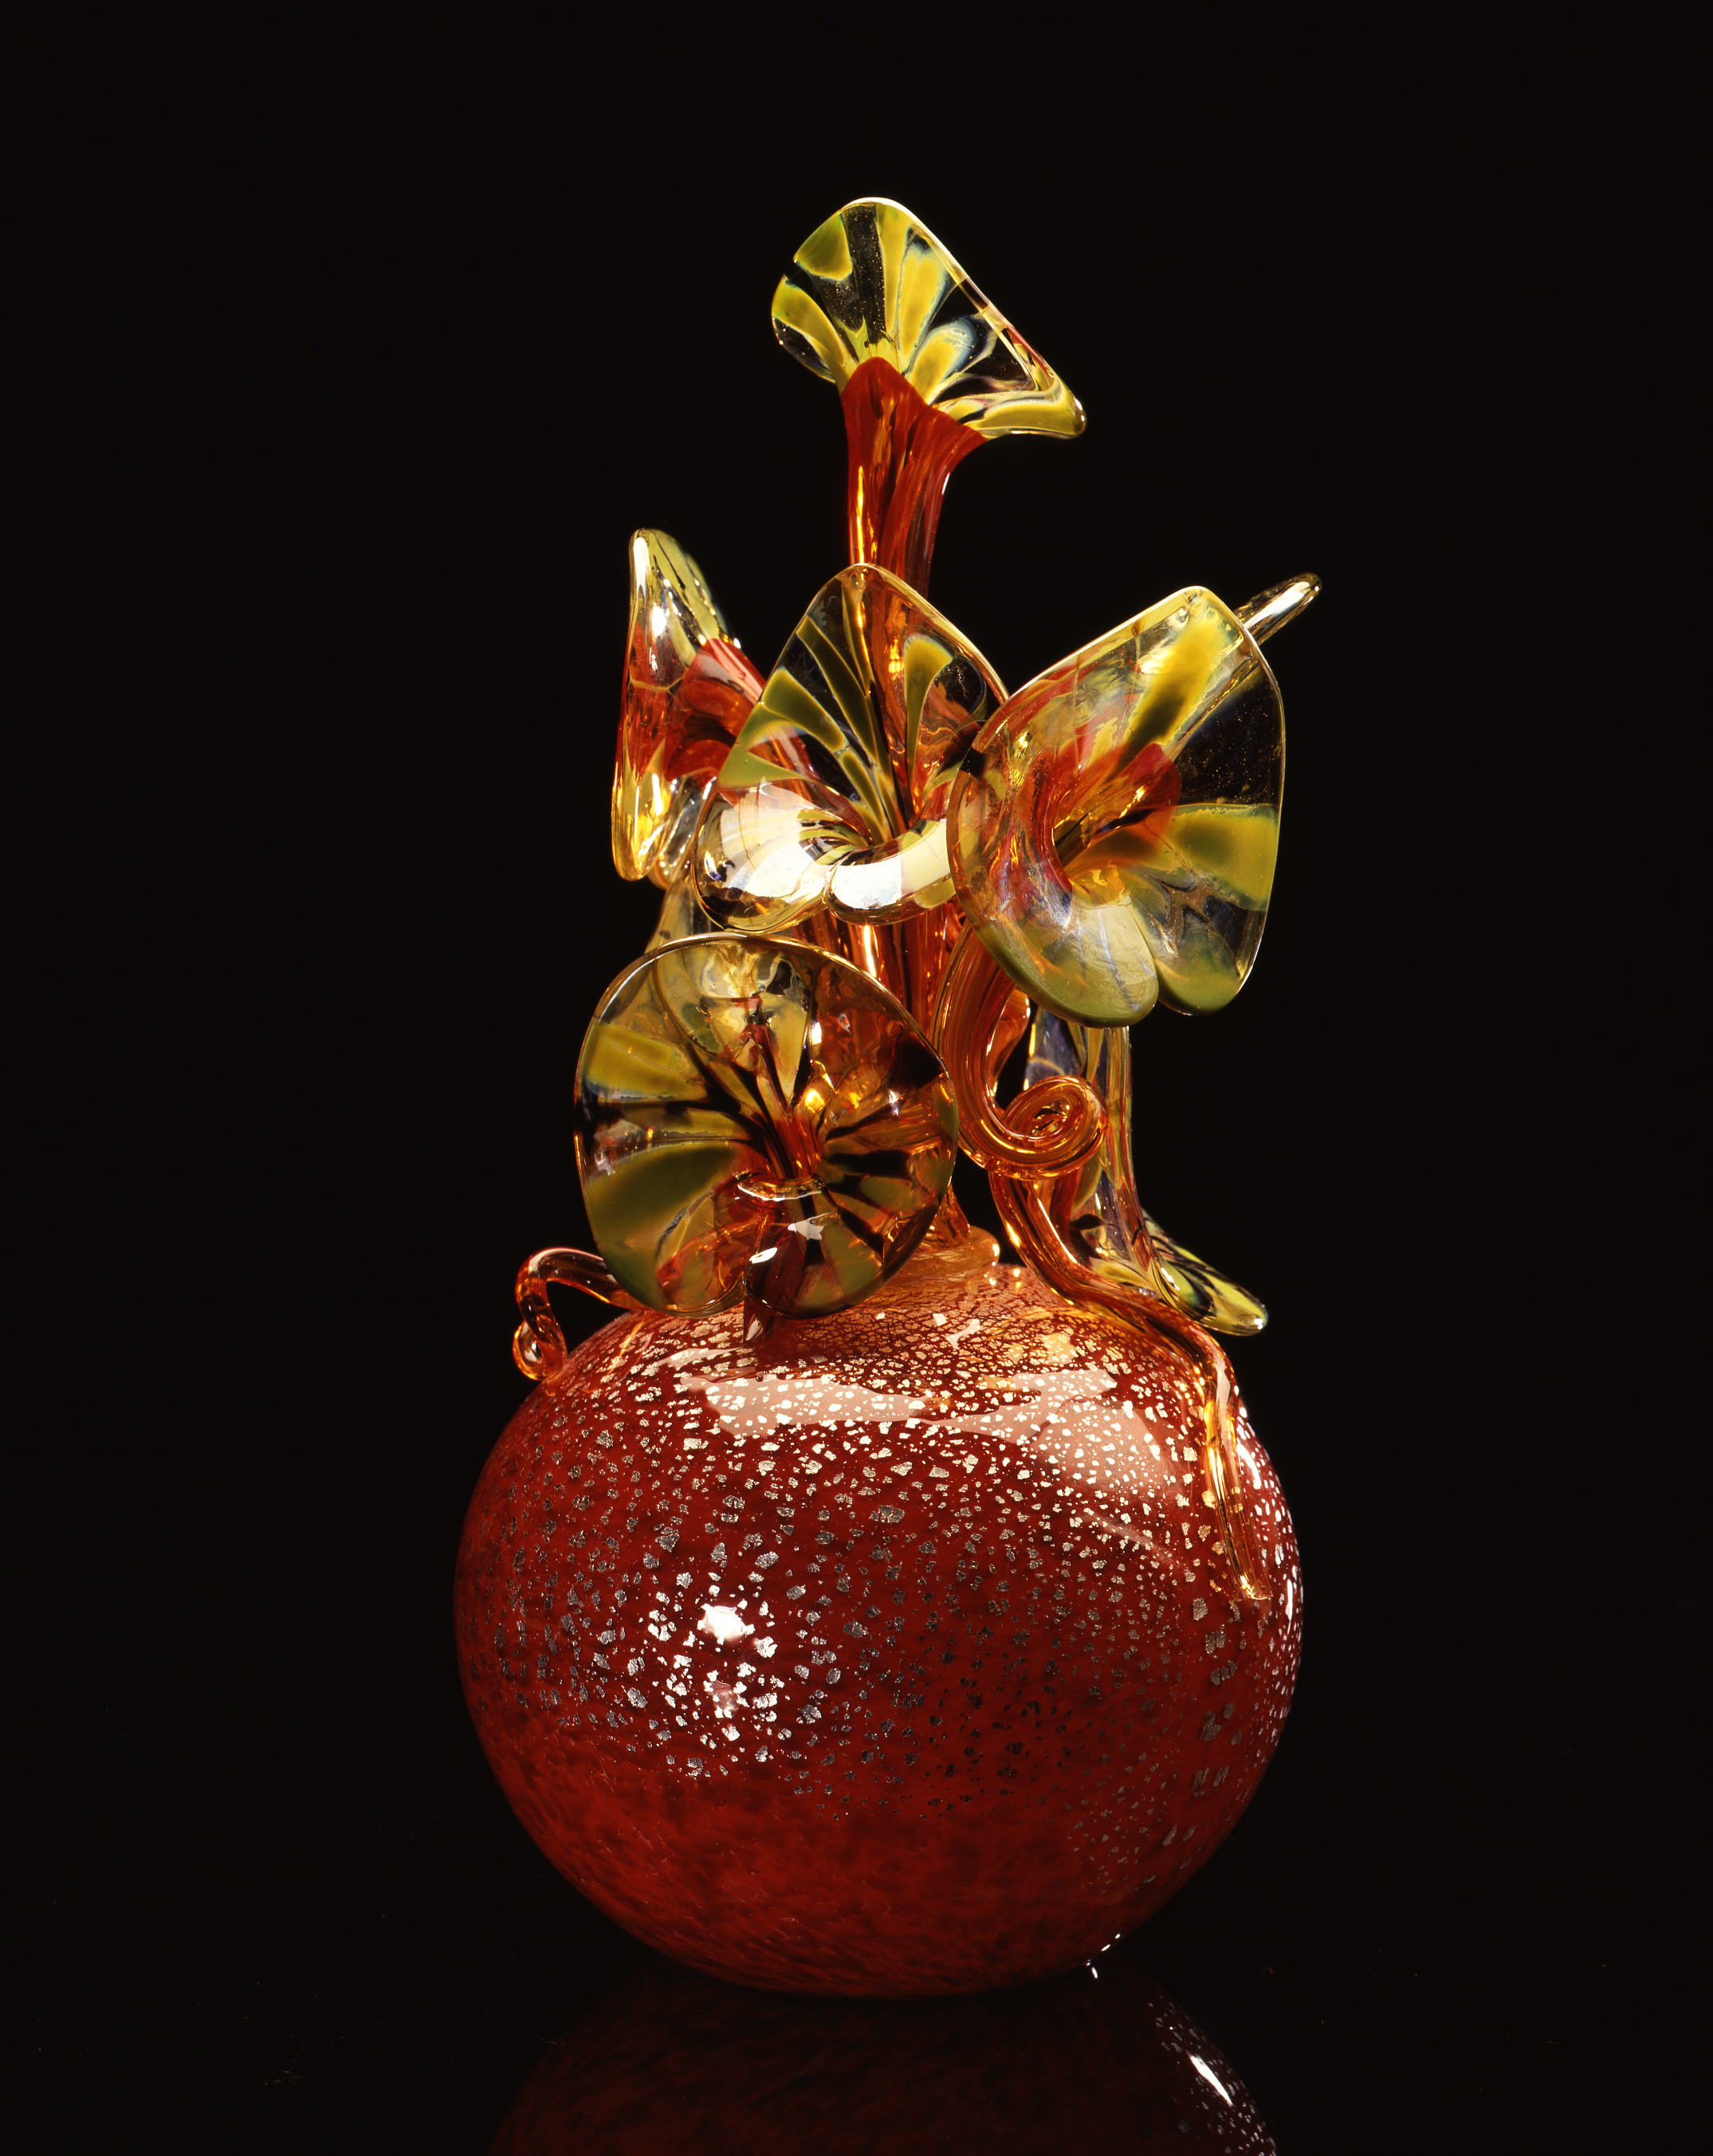 Dale Chihuly,  Red Speckles Piccolo Venetian with Red Coild and Green Lilies  (1994, glass, 12 x 5 x 6 inches)